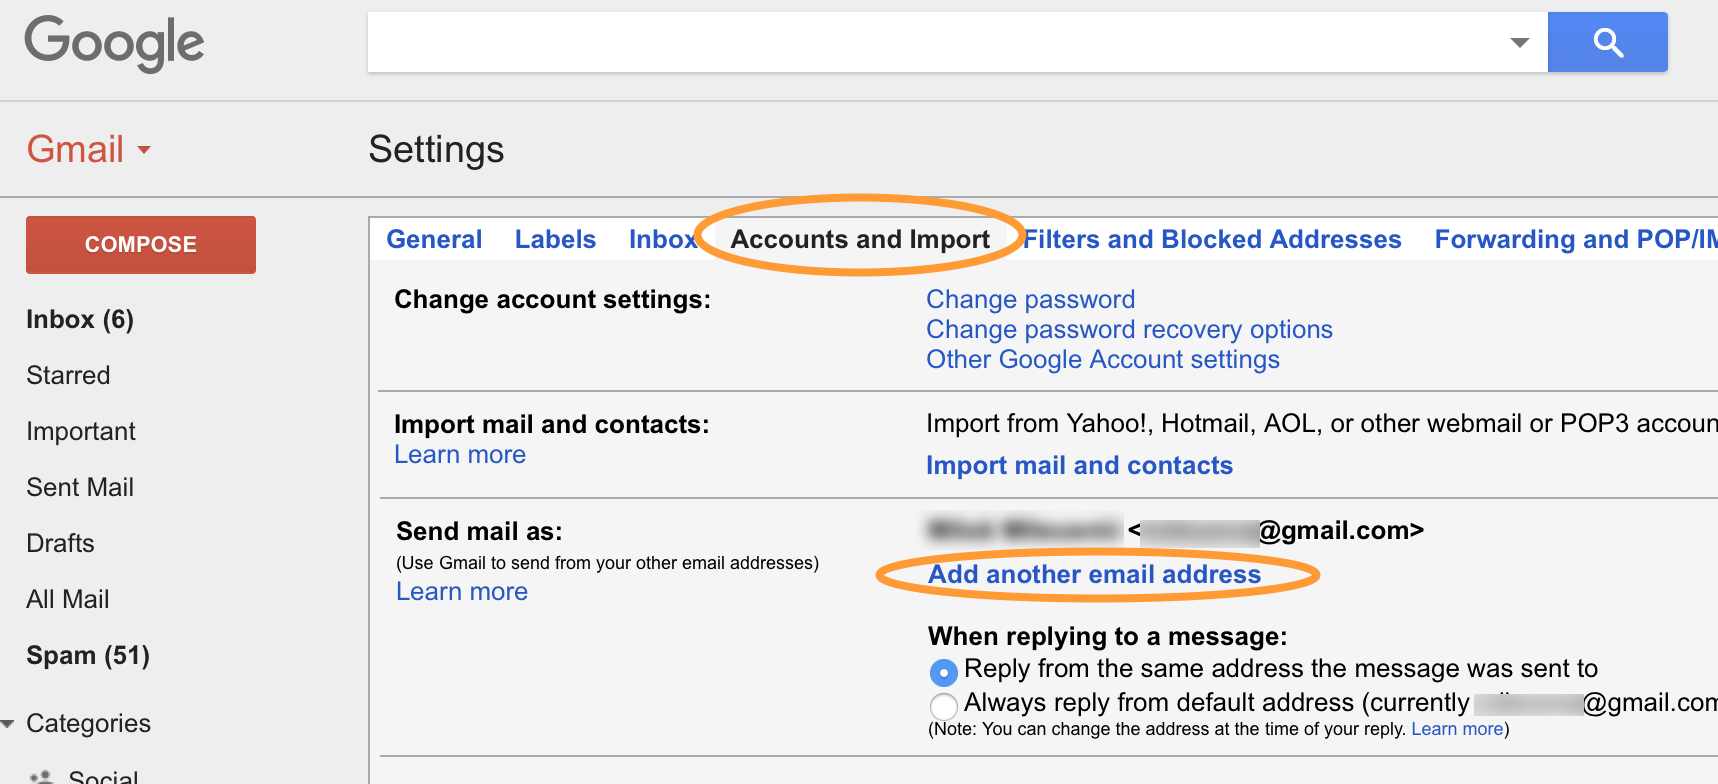 Account and Imports settings in Gmail